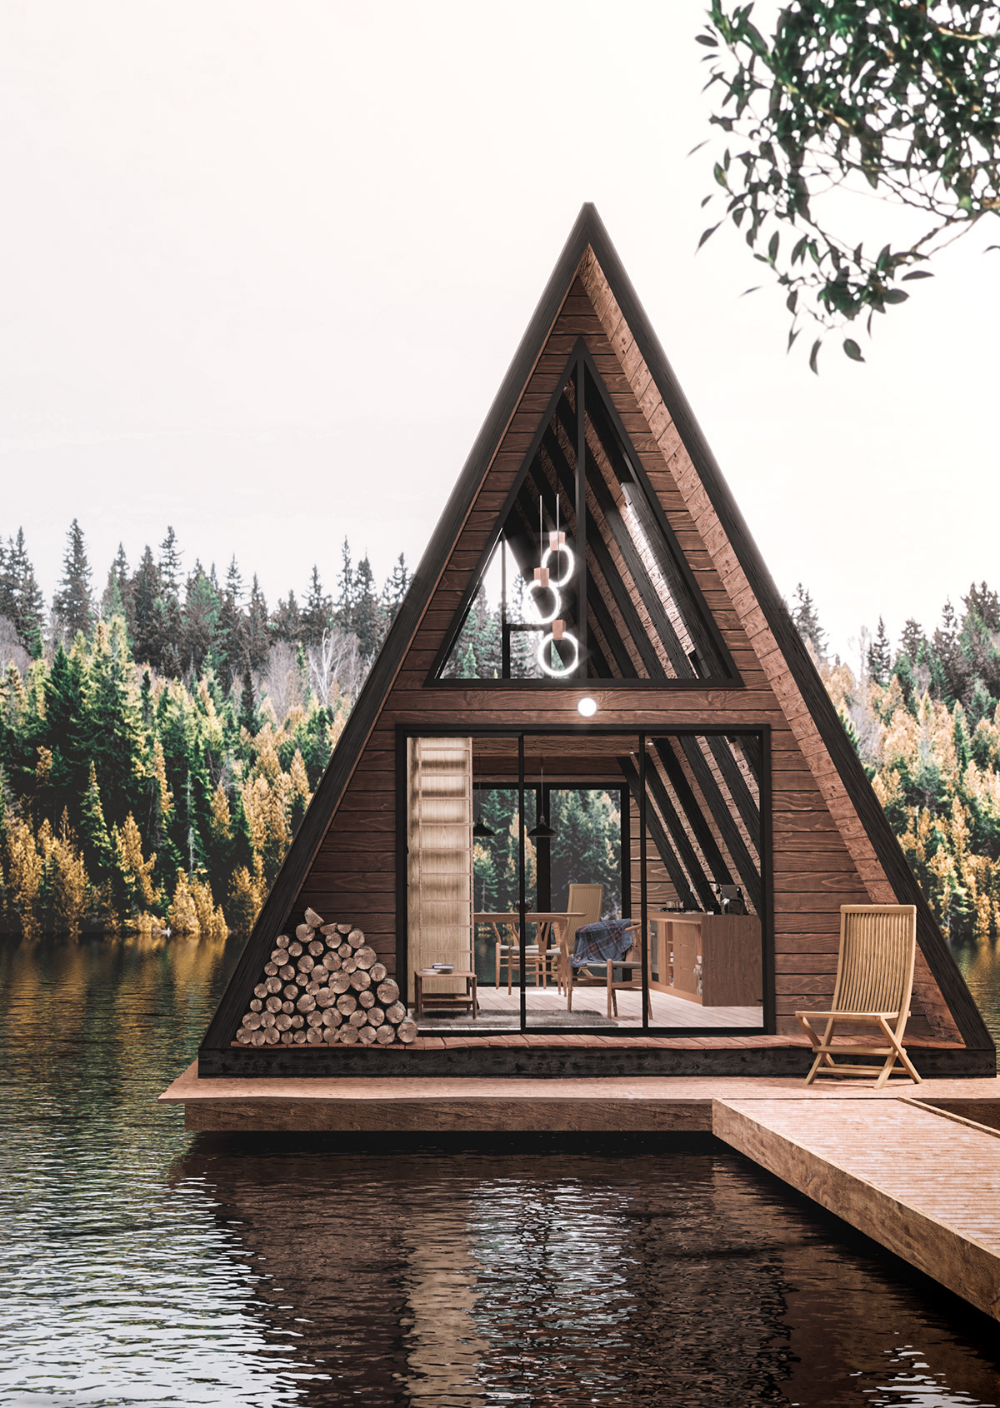 Waterfront House On Behance House Architecture Design Architecture House Triangle House